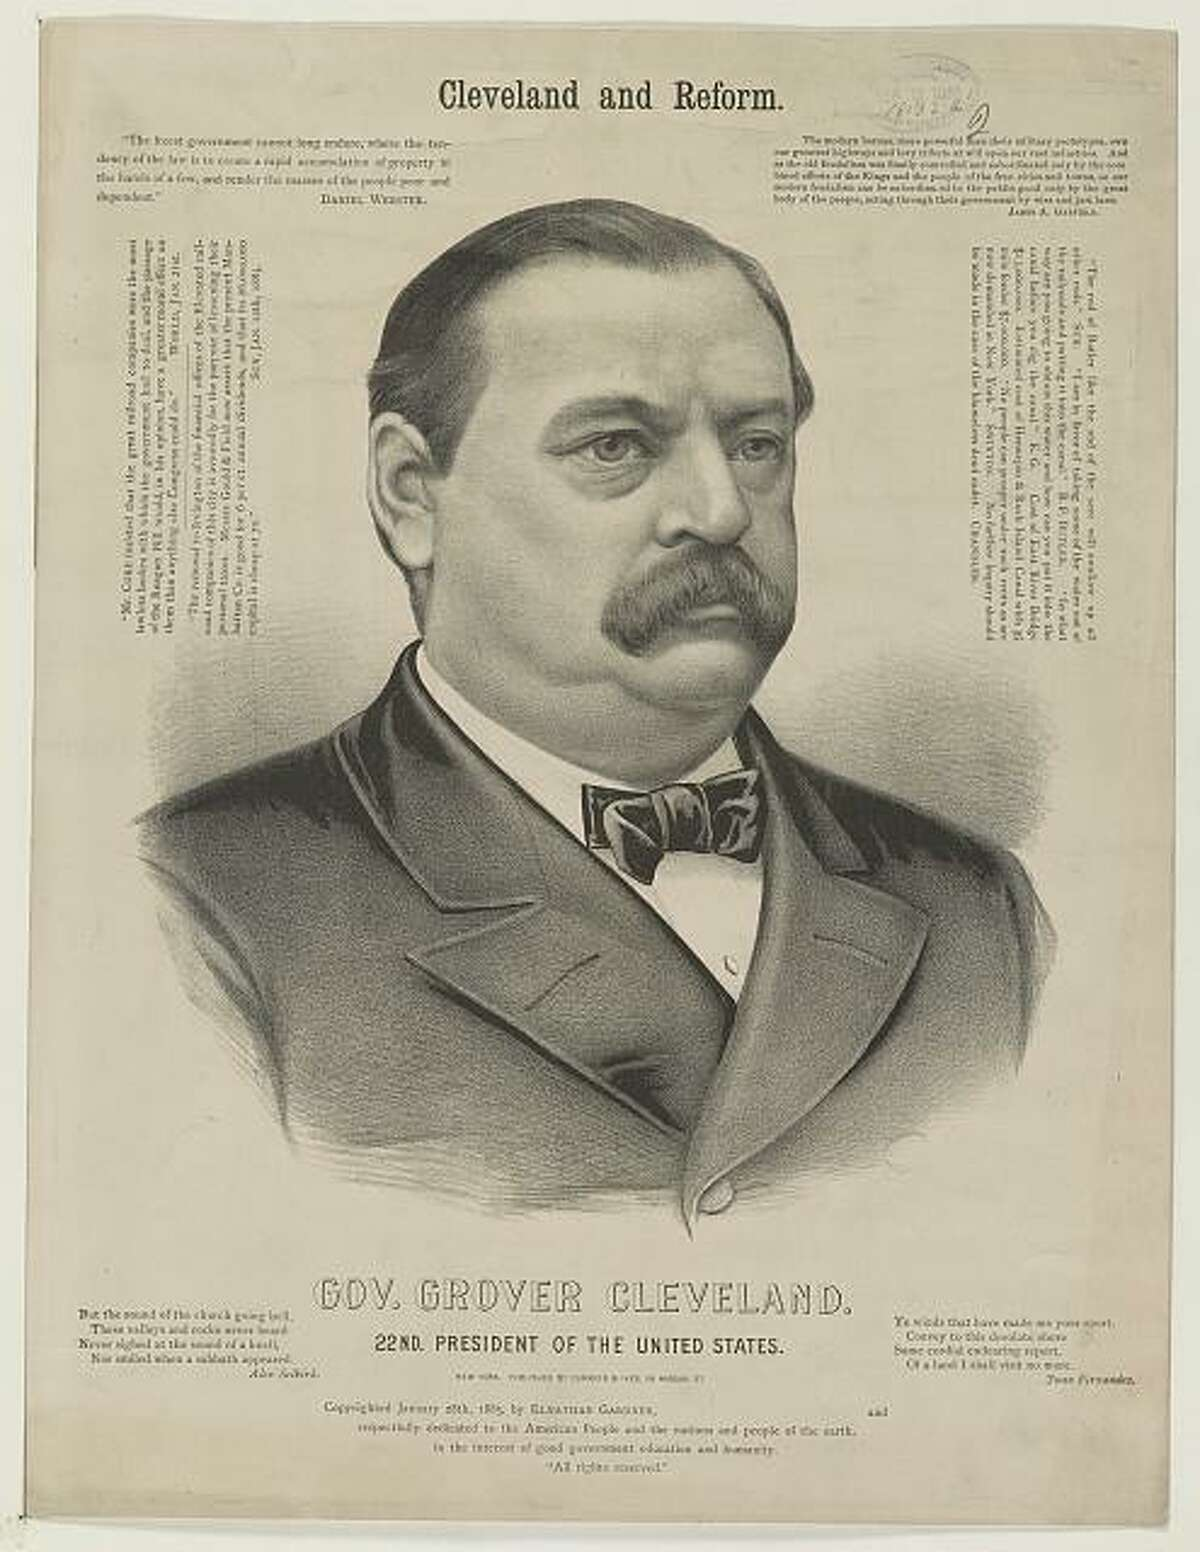 The last Democratic presidential candidate Darien, CT voted for was Grover Cleveland in 1888. Cleveland, the incumbent at the time, lost the election.